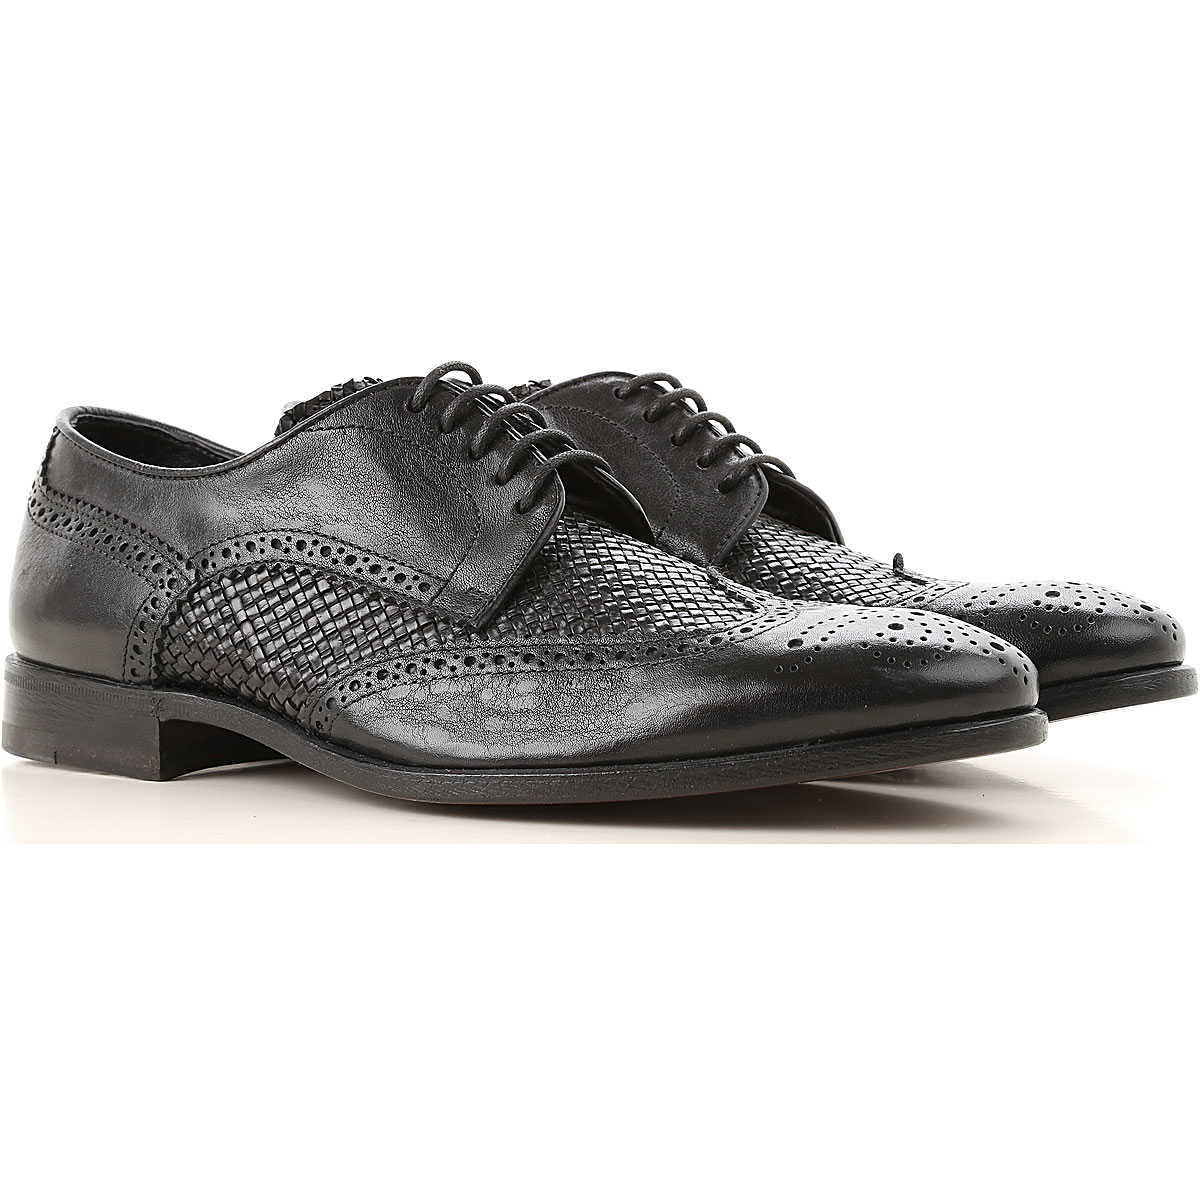 Henderson Lace Up Shoes for Men Oxfords 10 10.5 6 8.5 9 9.5 Derbies and Brogues UK - GOOFASH